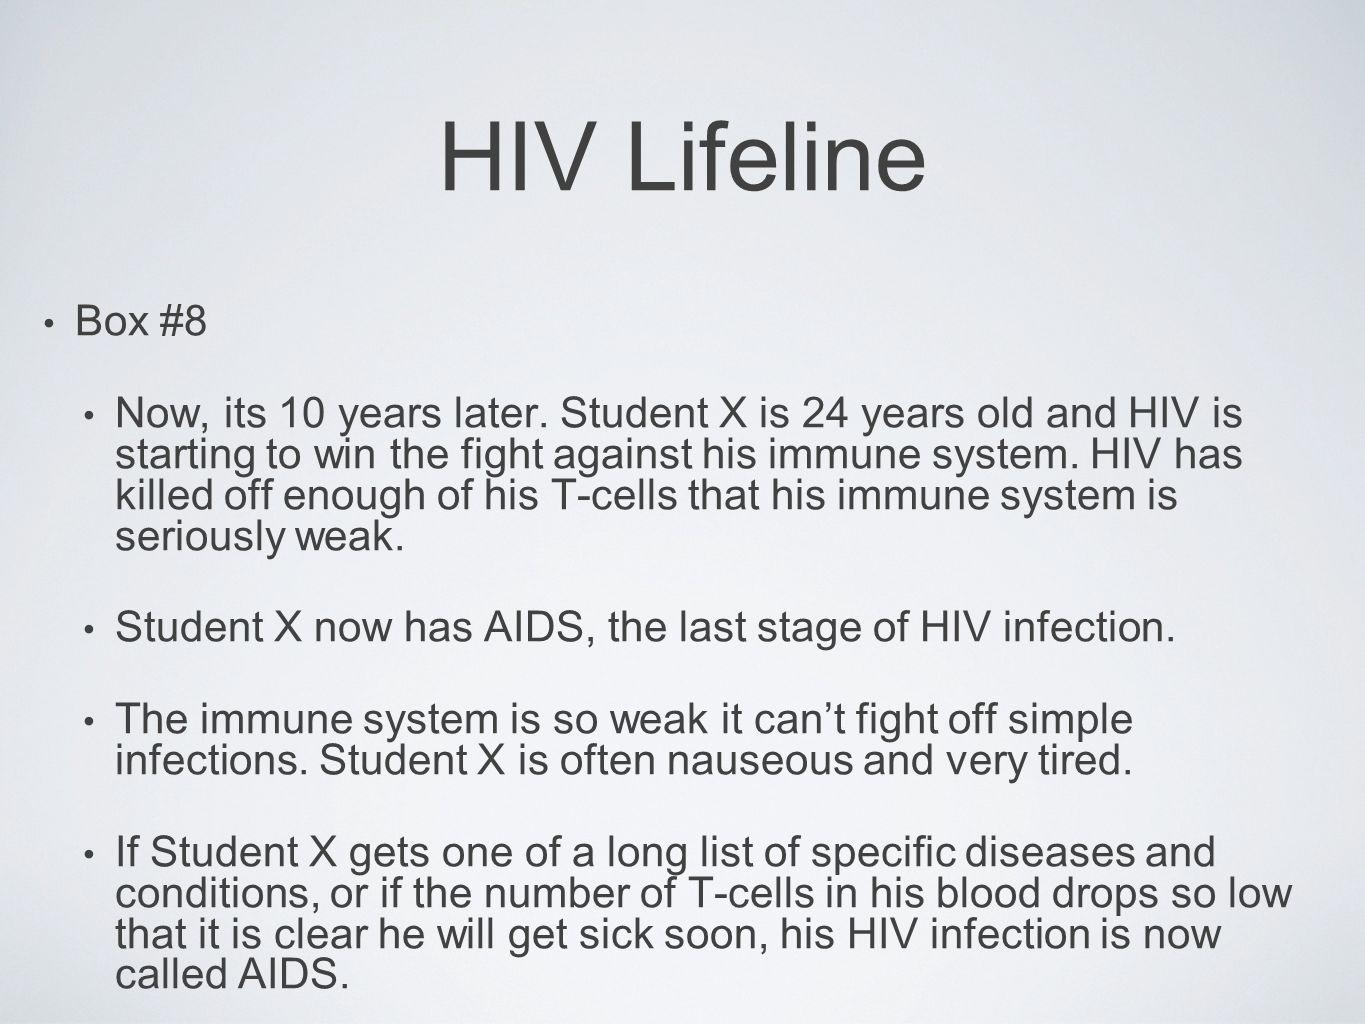 HIV Lifeline Box #8.